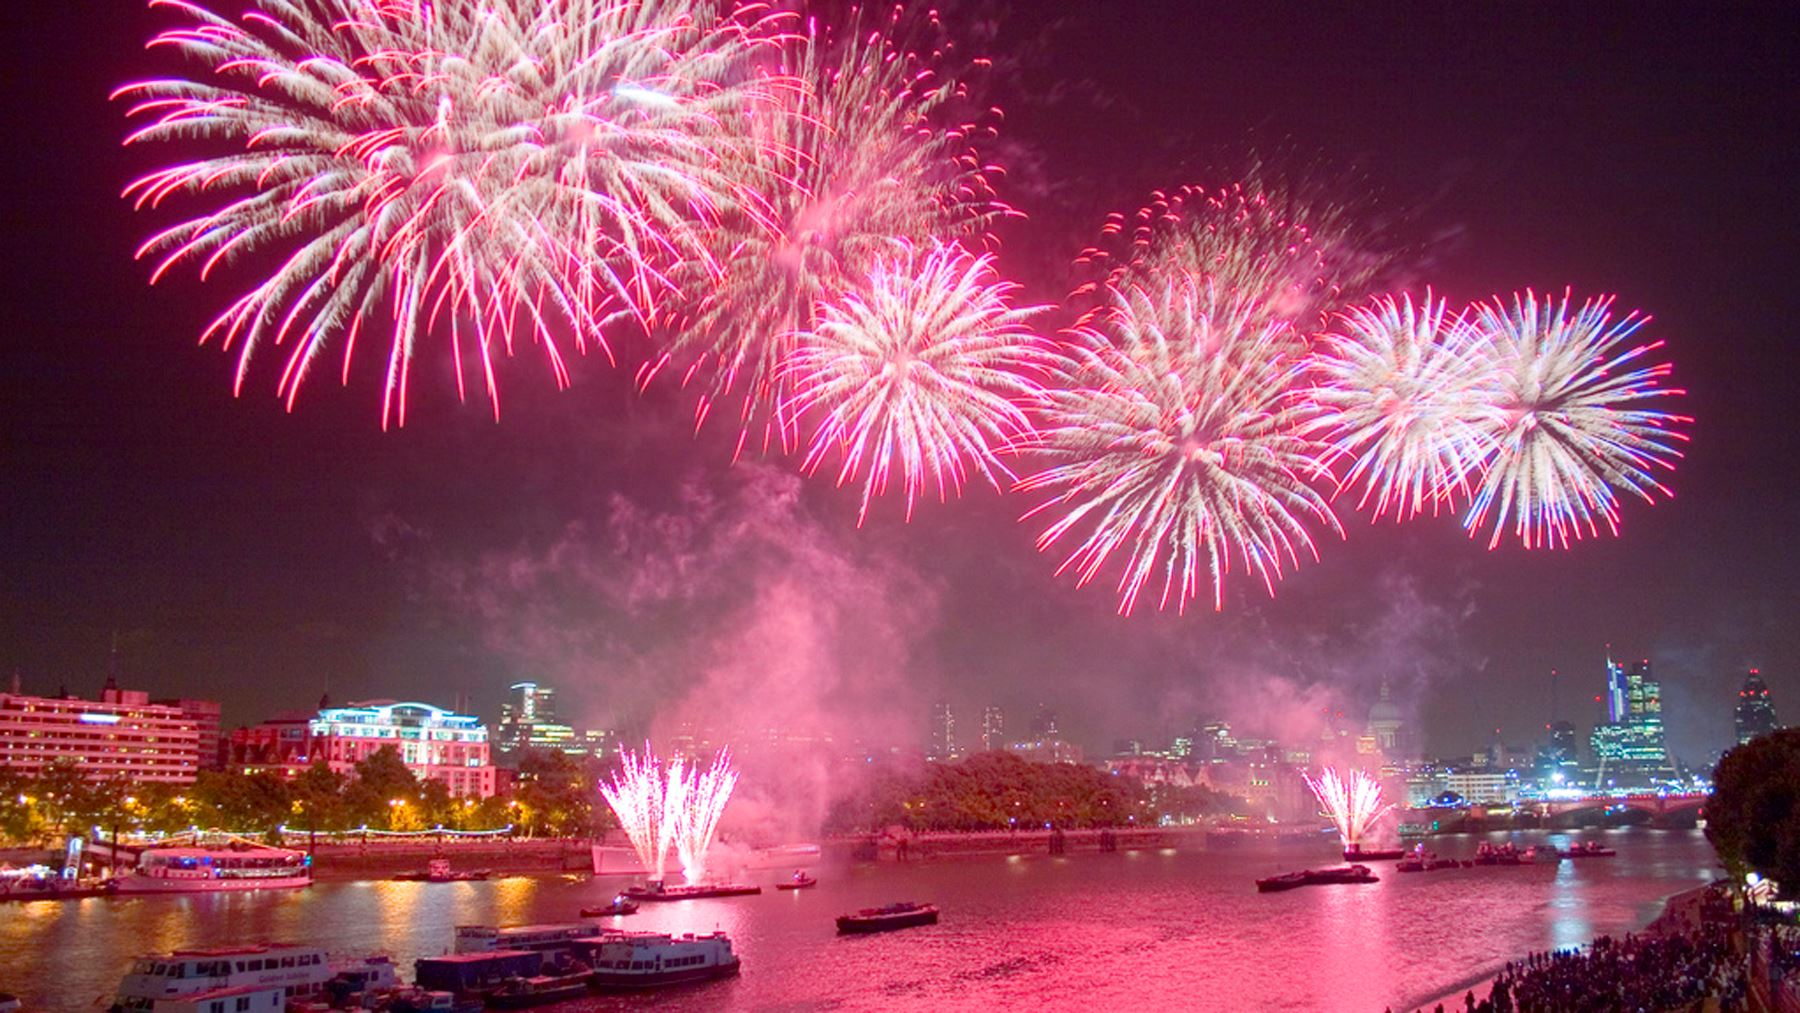 Formations, Fireworks and Photography!